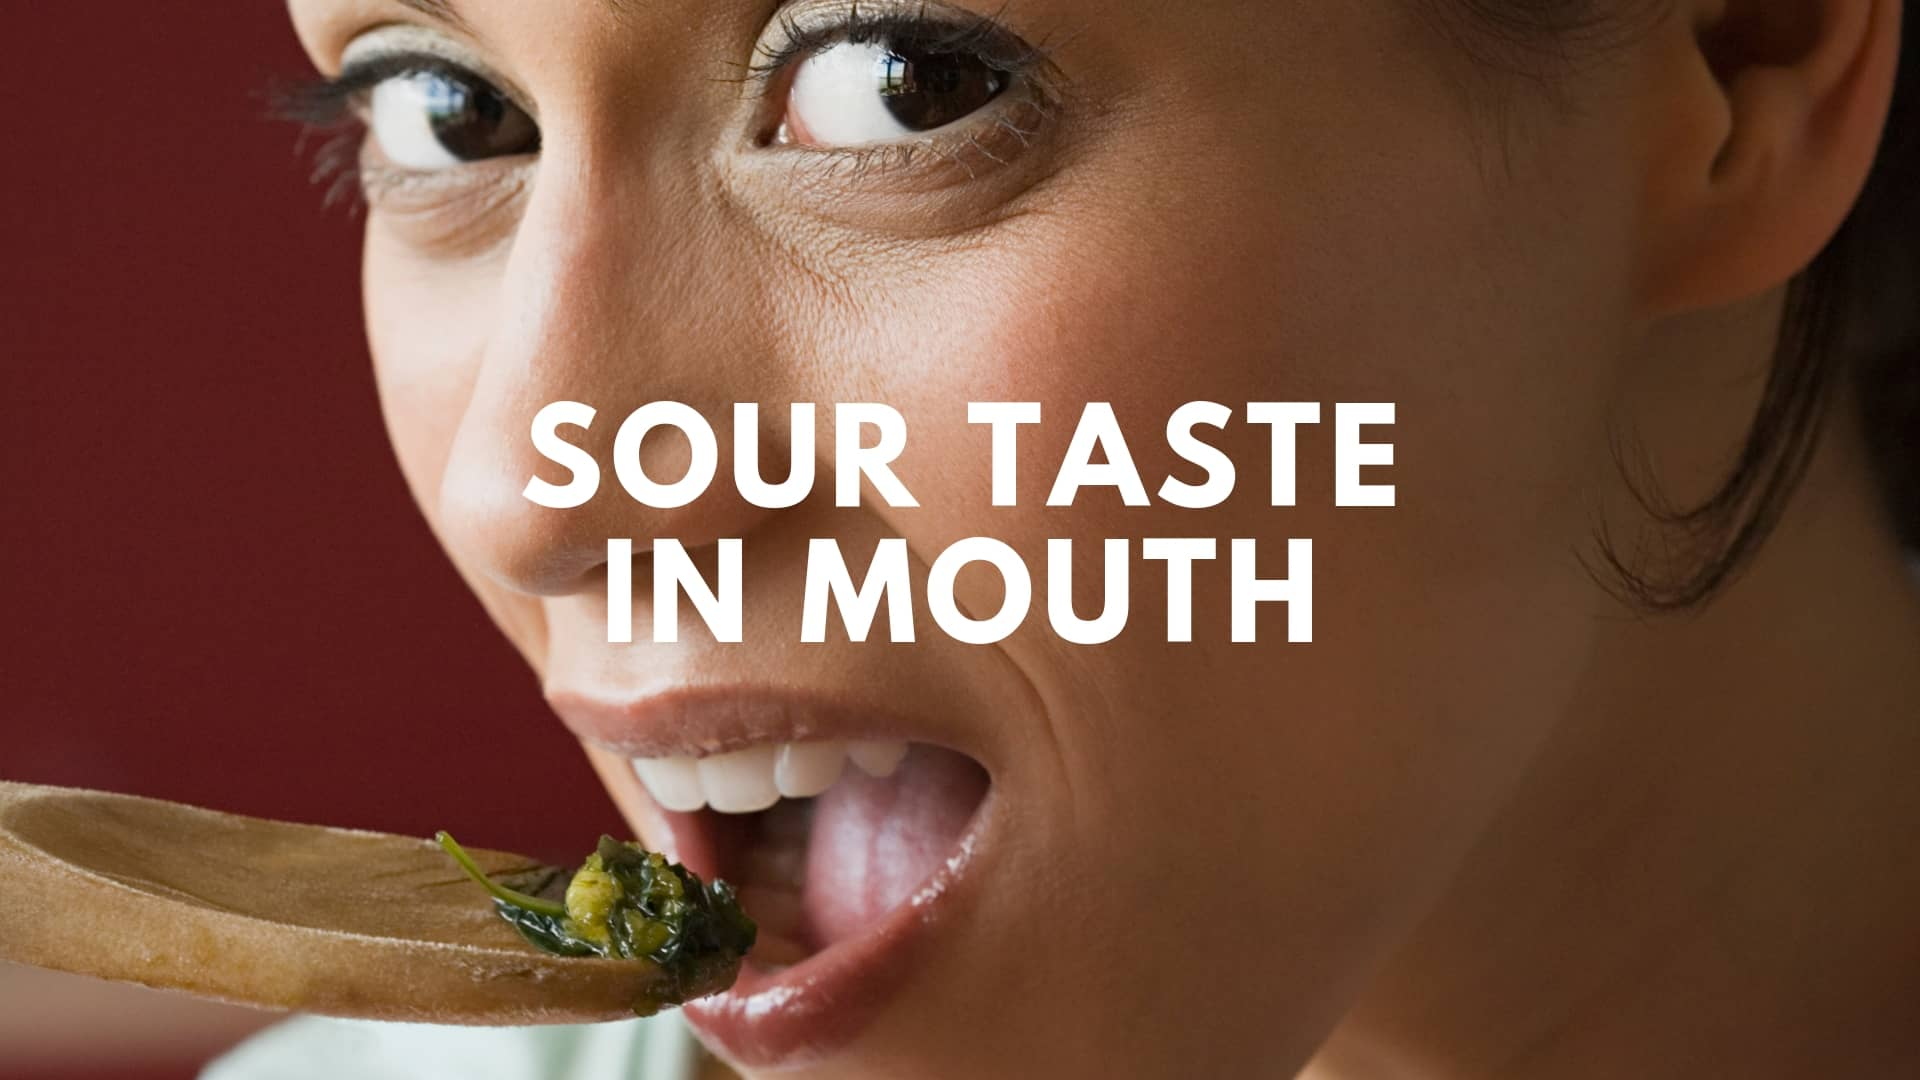 Sour Taste In Mouth